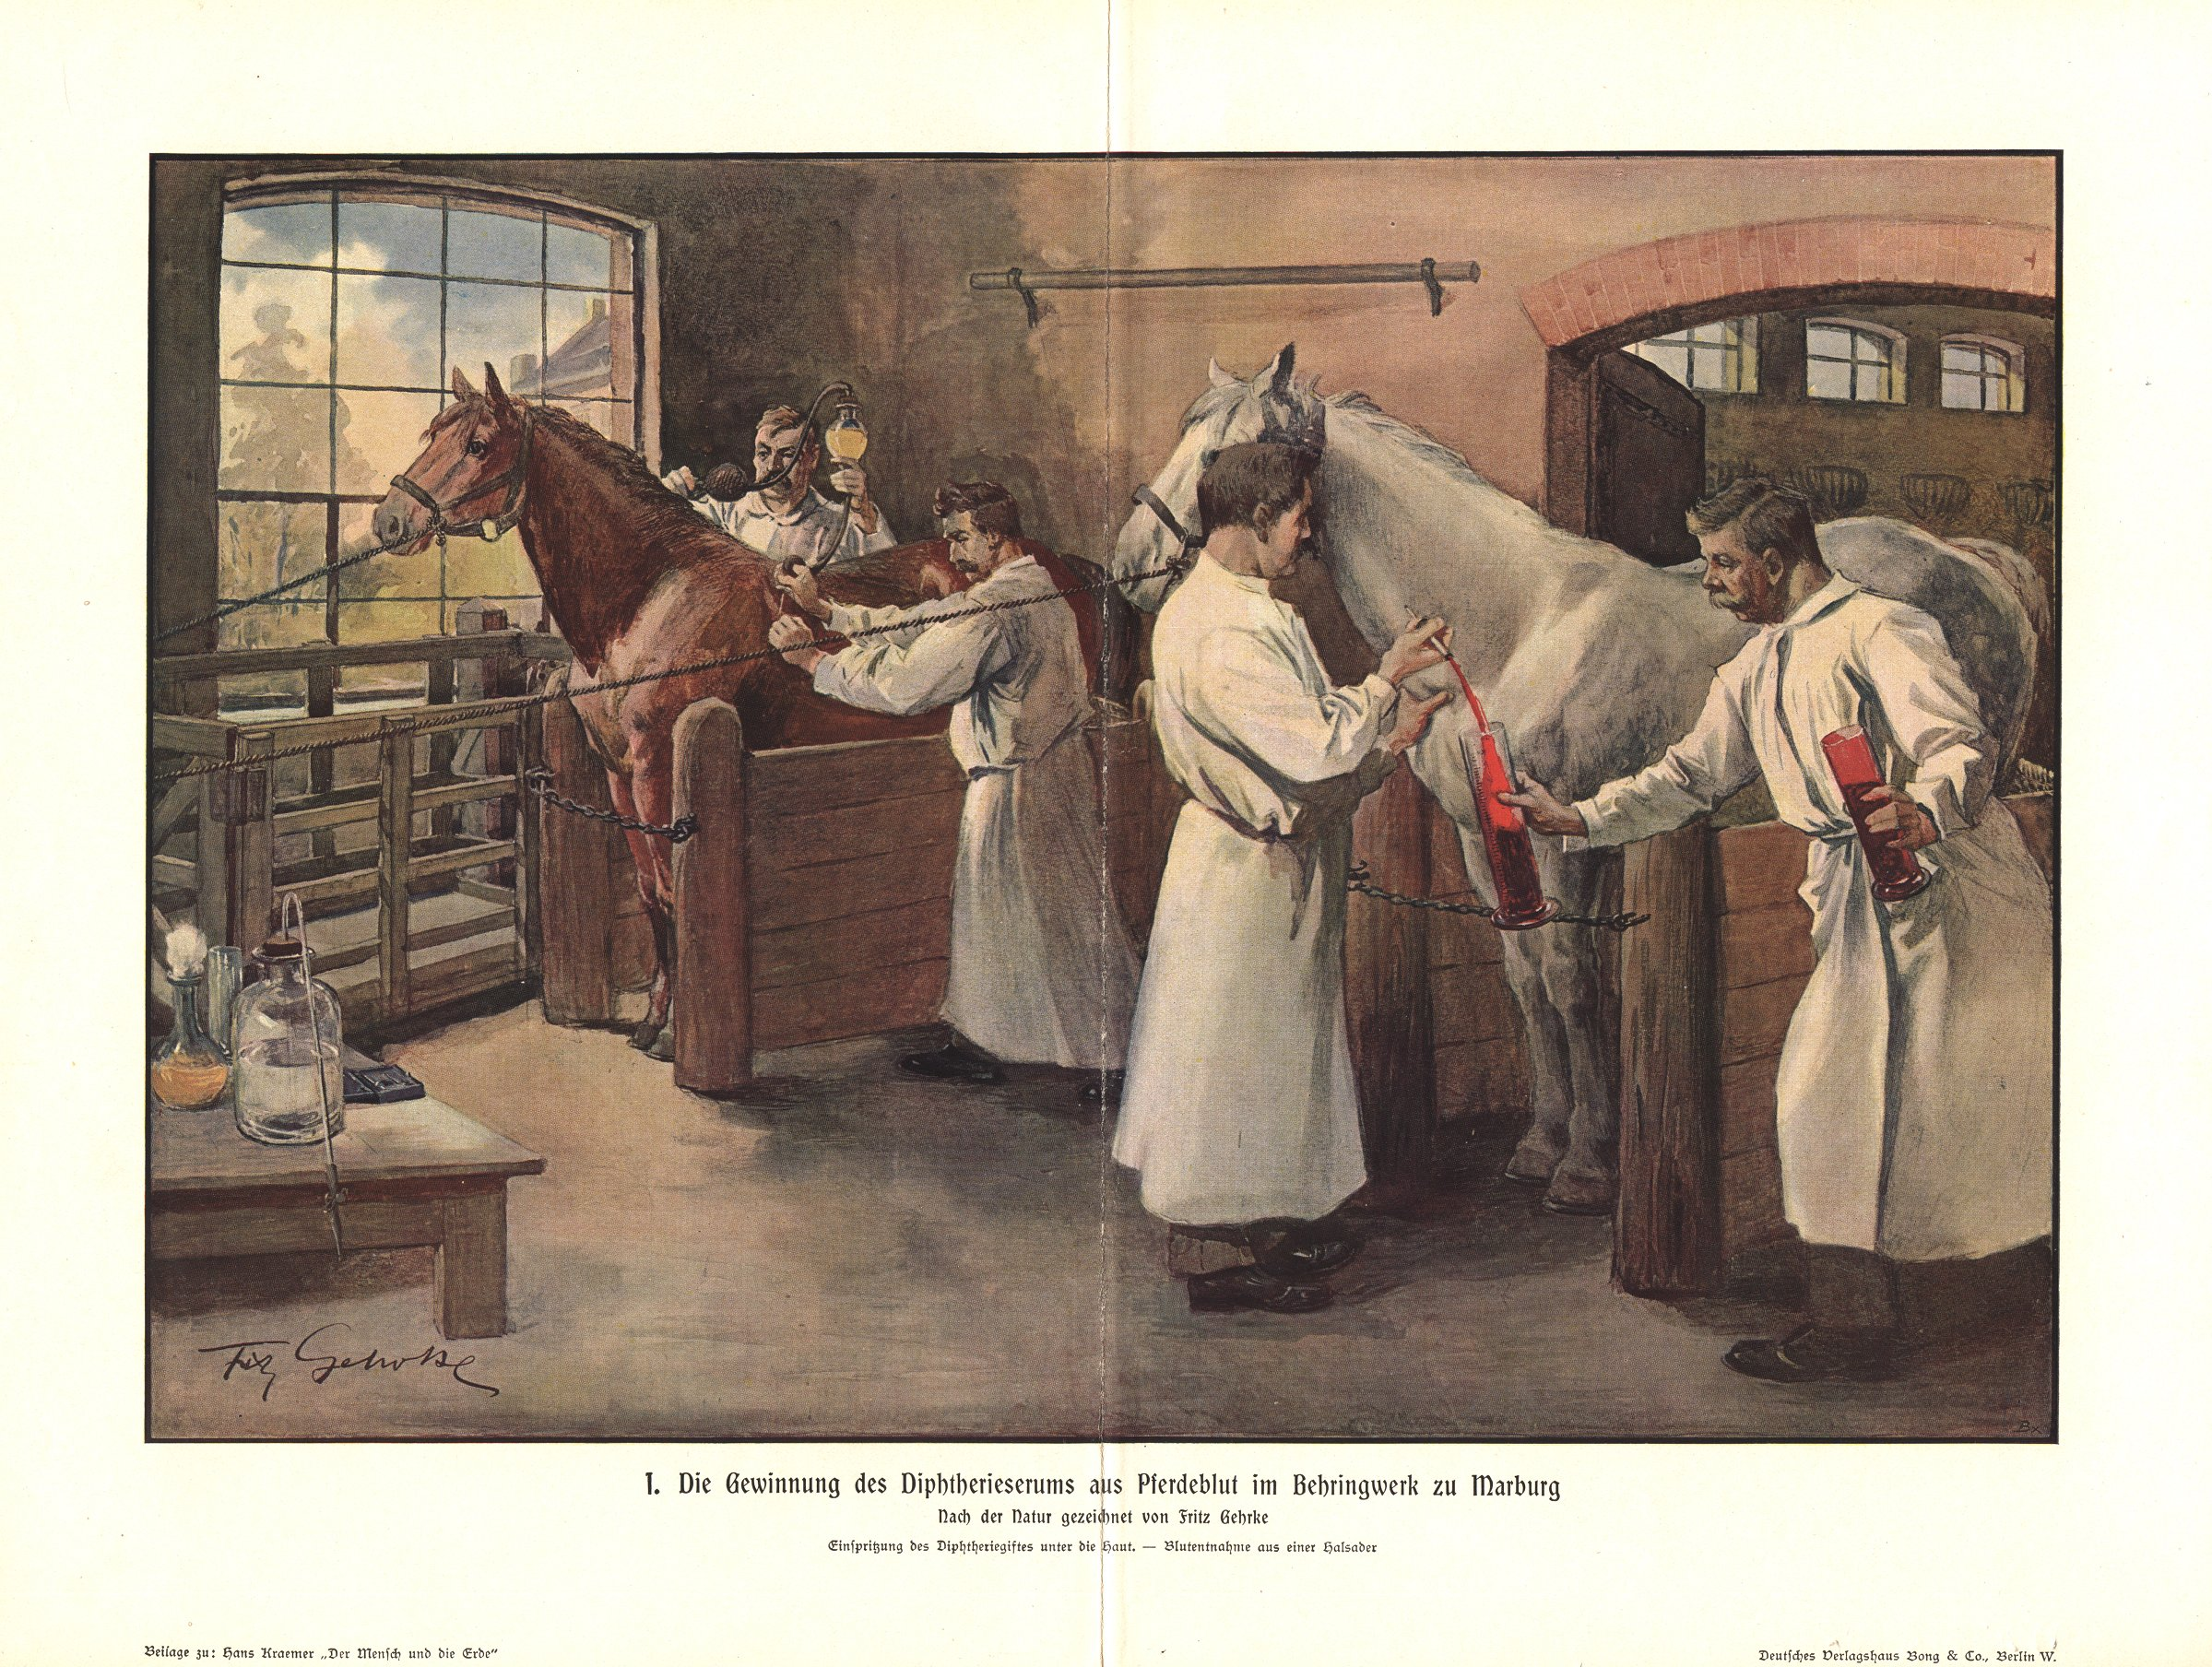 Diphtheria Antitoxin production relied on the service of horses, as depicted in this 1895 German illustration by Fritz Gerhrke.